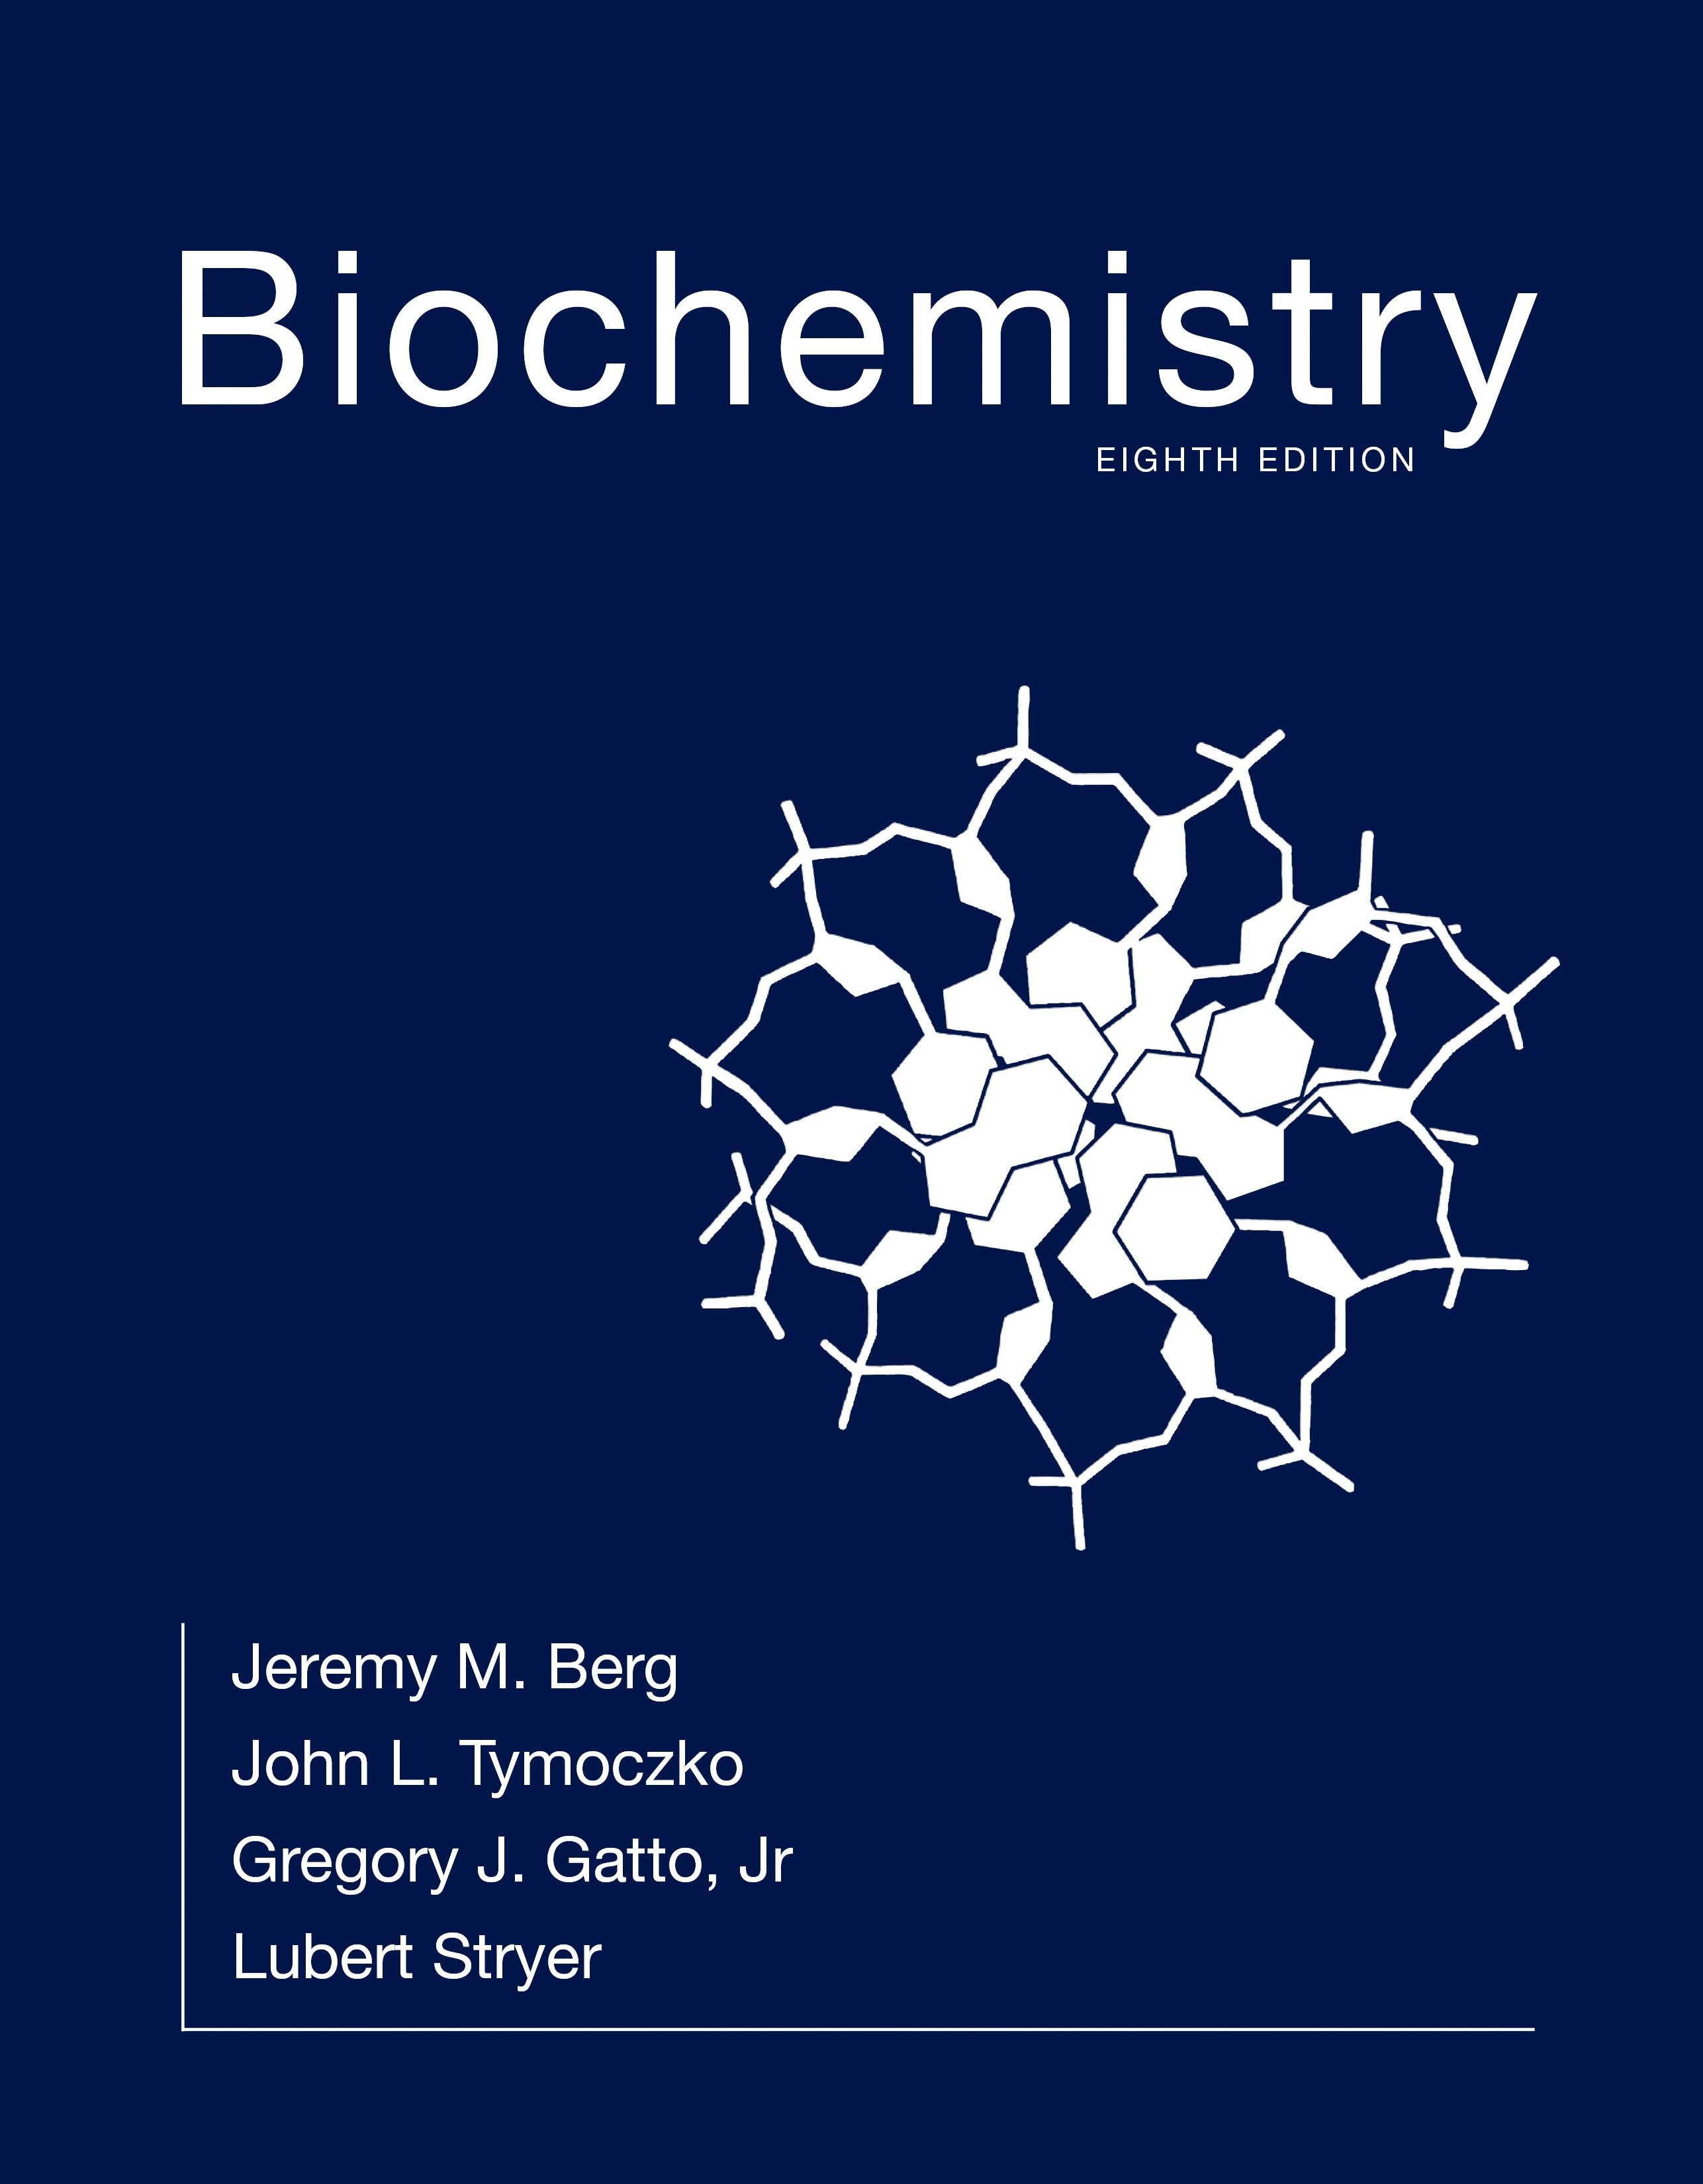 Biochemistry 8th Ed Jeremy M Berg John L Tymoczko Gregory J Gatto Jr Lubert Stryer New York W H Freeman Cop 2015 Matèries Bioquímica N